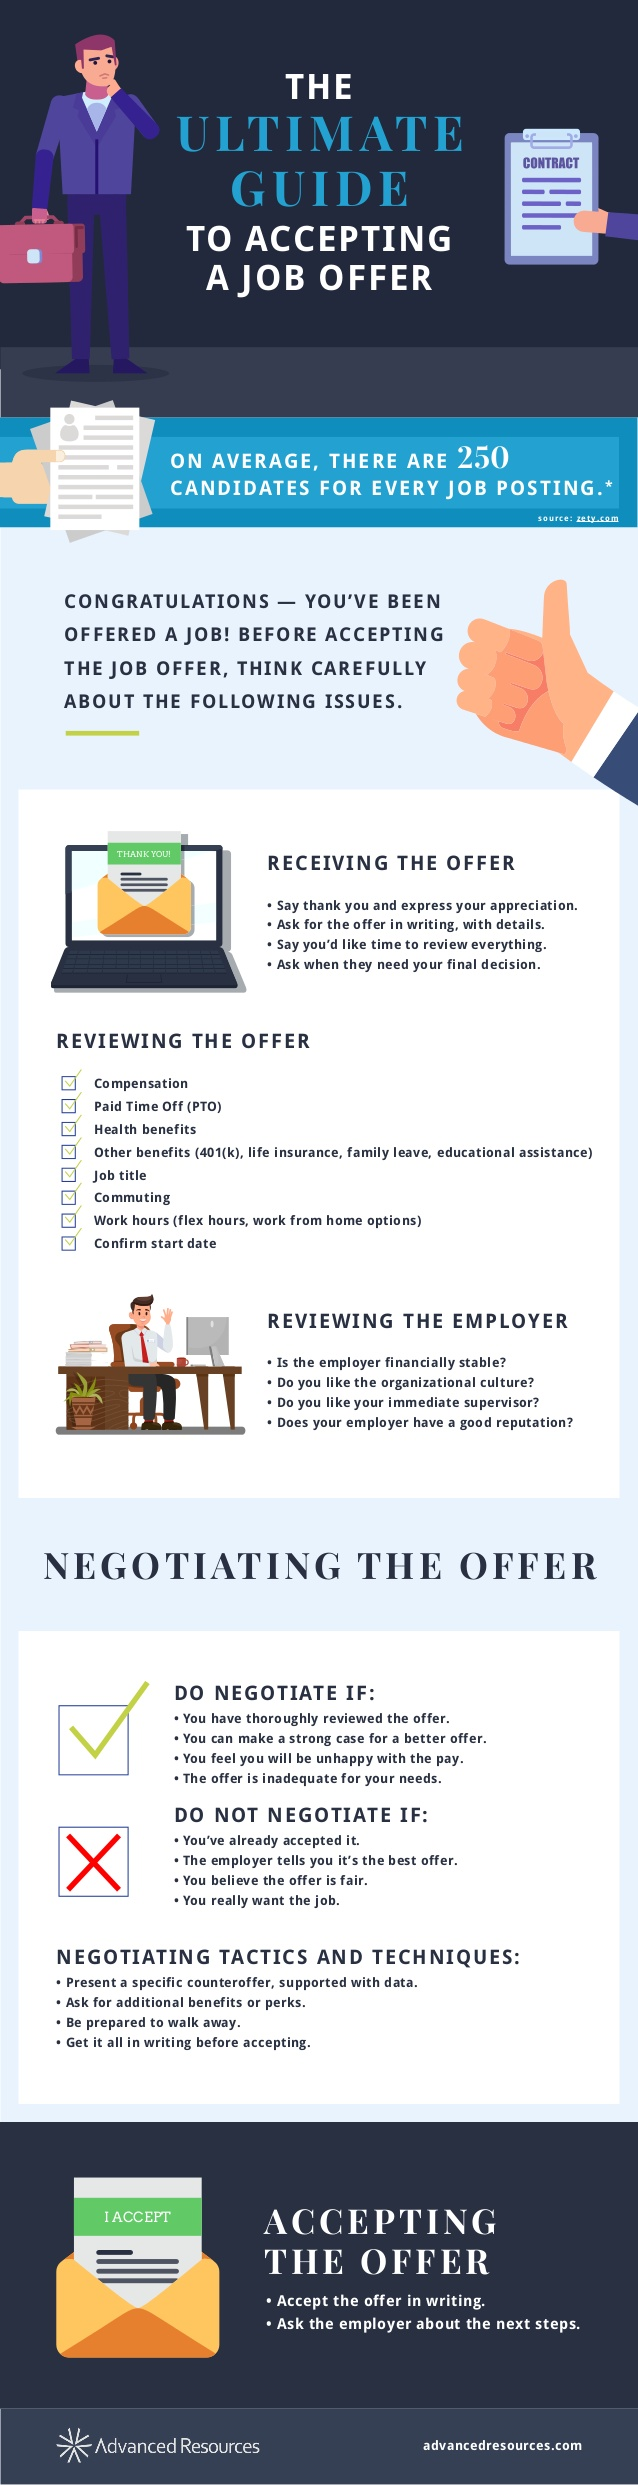 The Ultimate Guide to Accepting A Job Offer #infographic #Career #Job Offer #Infographics #Jobs #Infographic